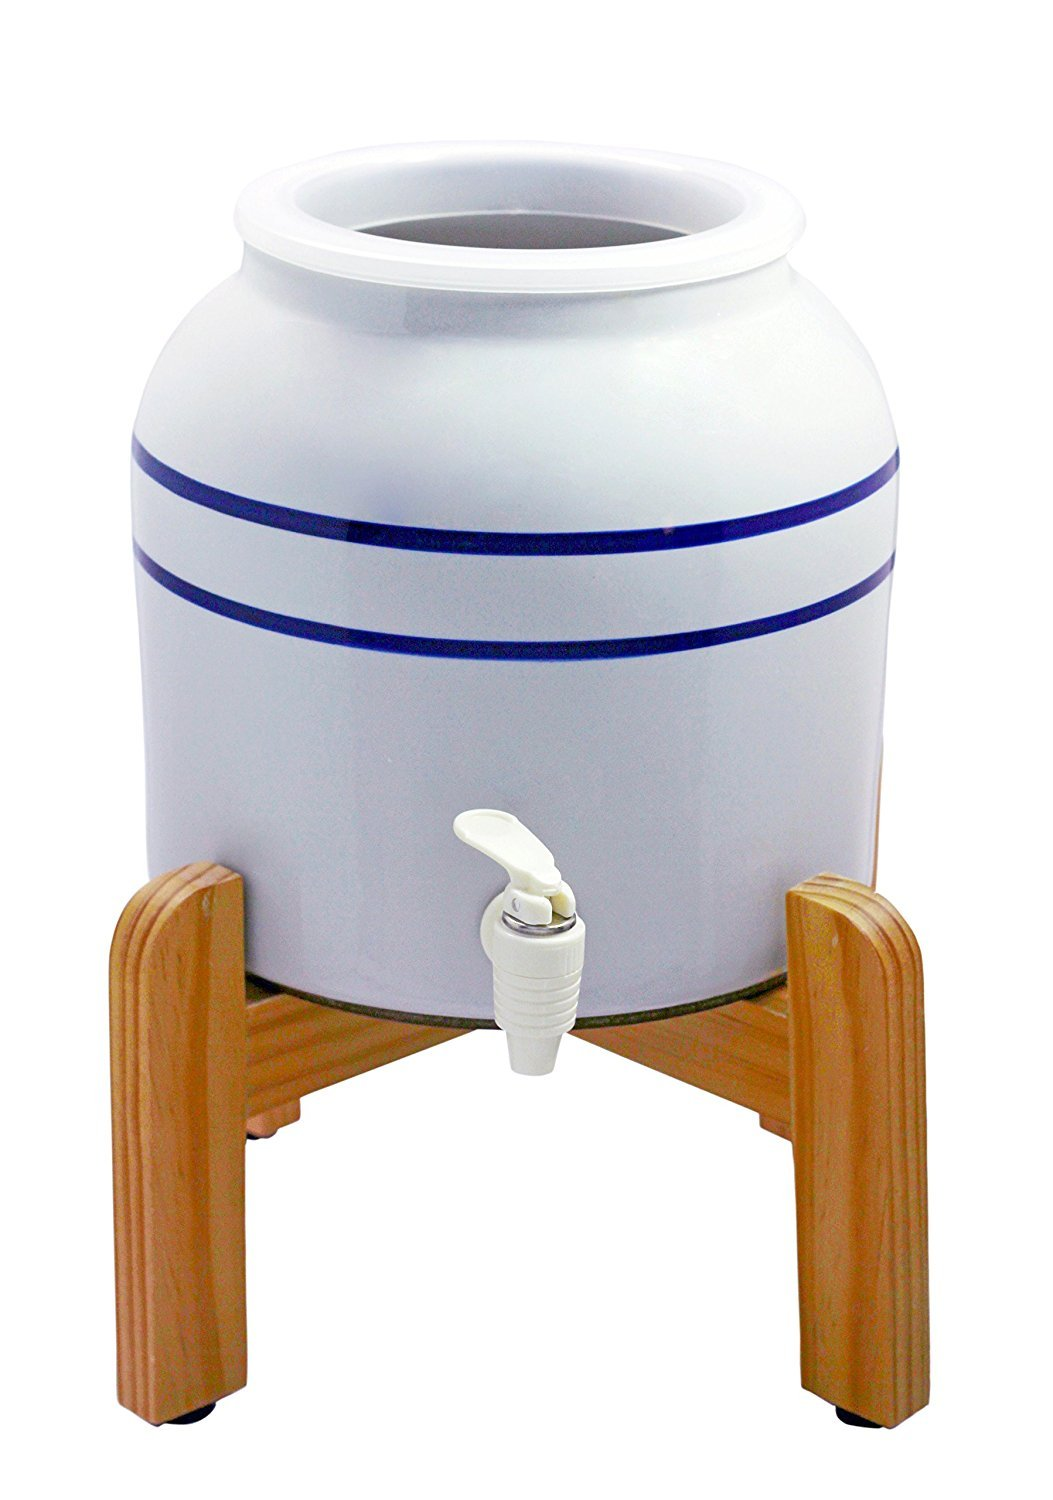 New Wave Enviro Porcelain Dispenser with Wood Counter Stand, Blue Striped (Pack of 2) by New Wave Enviro (Image #2)